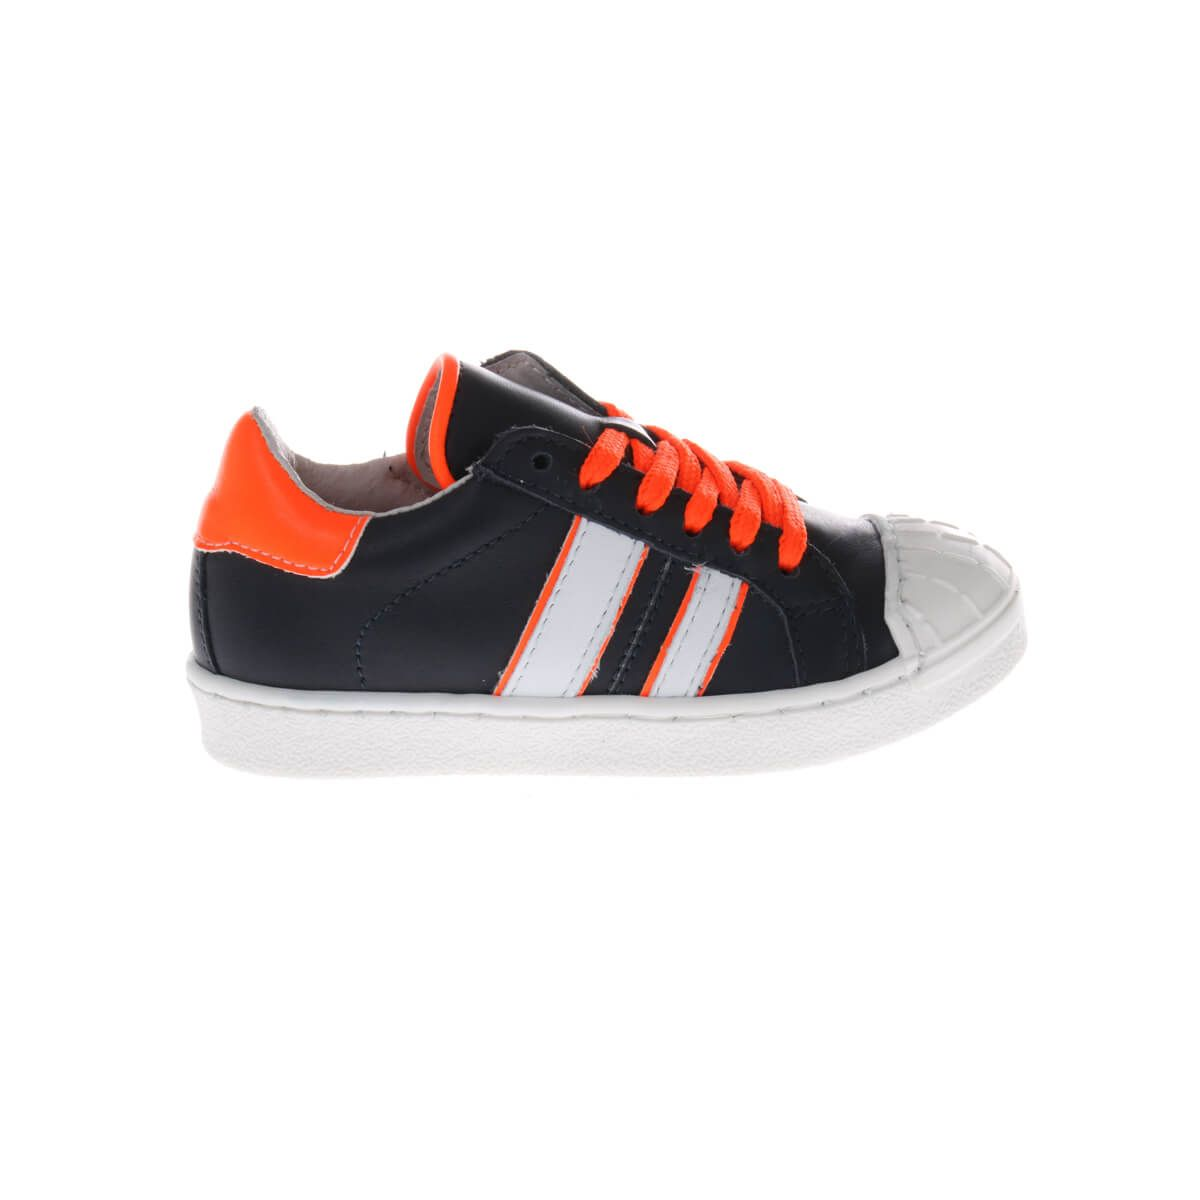 Jimmy Joy Y1189 Sneakers Blauw Oranje